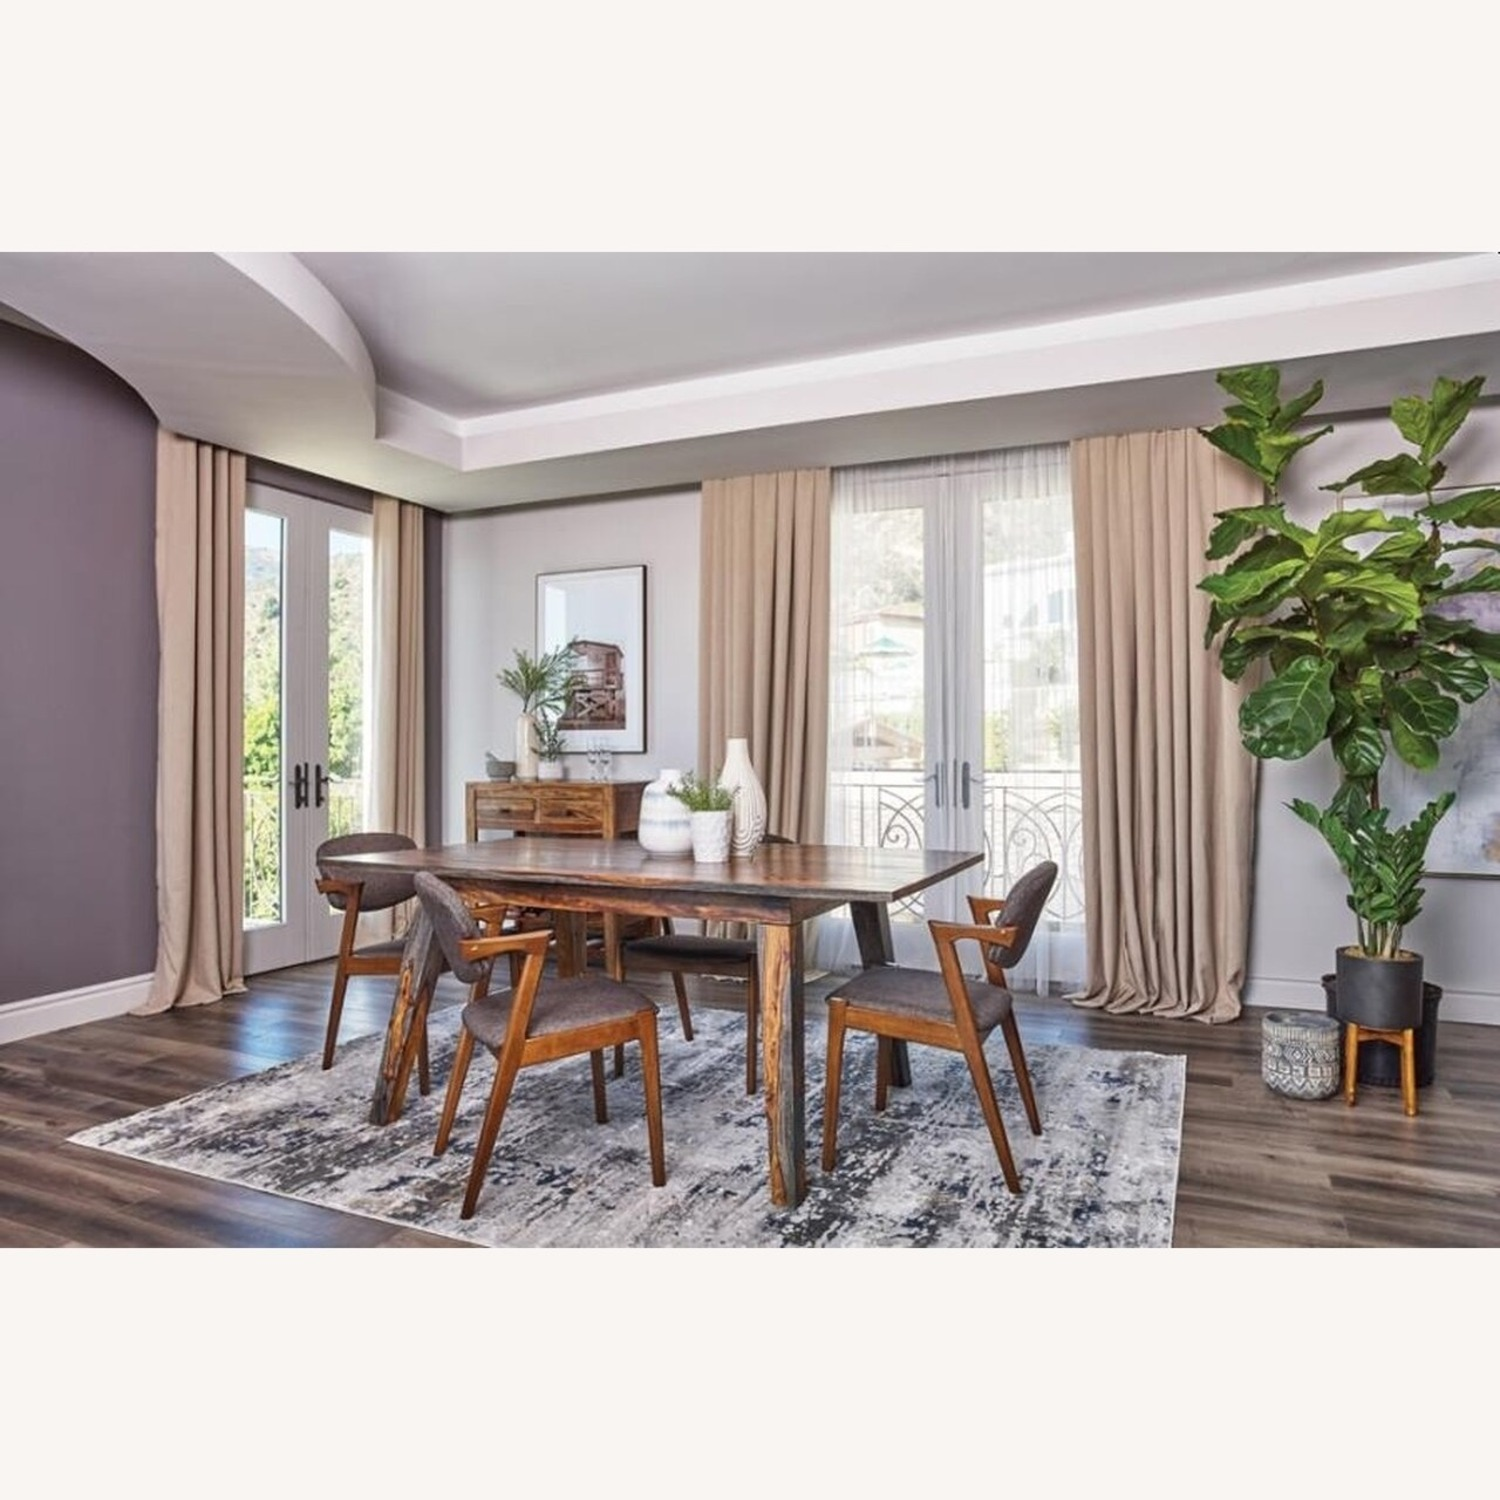 Dining Table Crafted In Grey W/ White Wood Grain - image-2